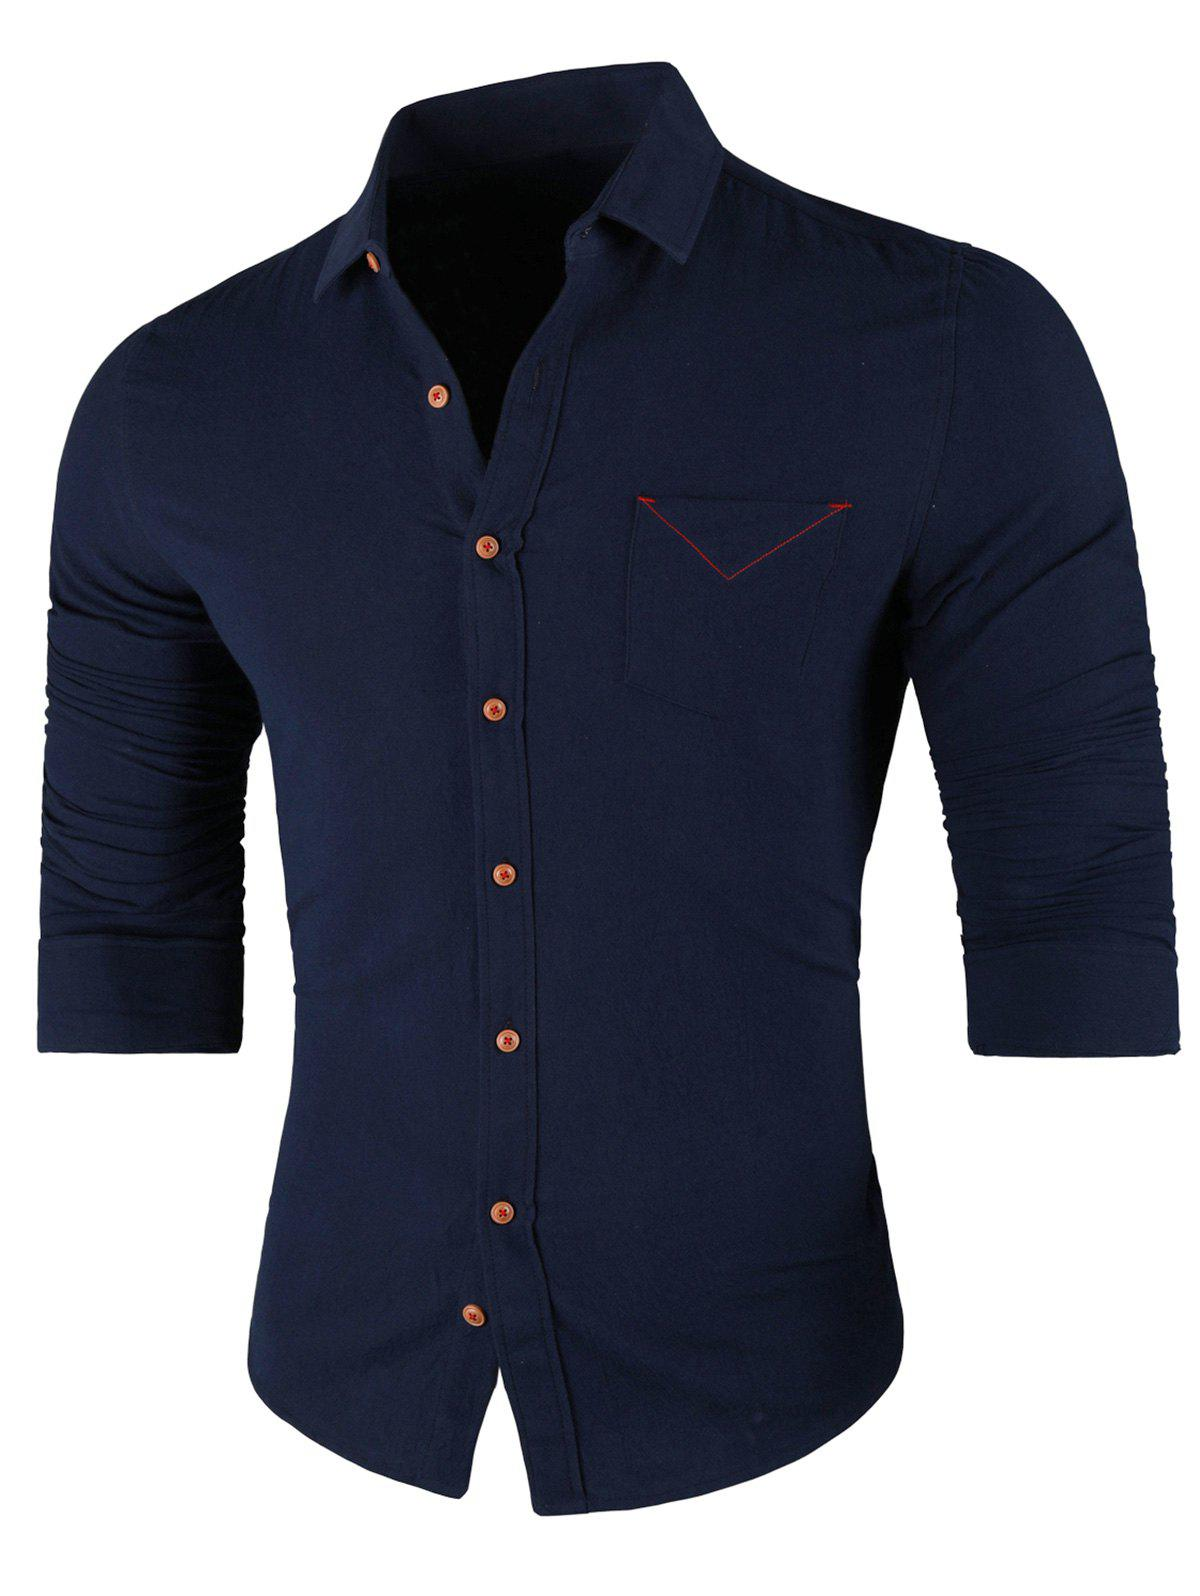 Chest Pocket Turn Down Collar Casual Shirt - CADETBLUE 2XL